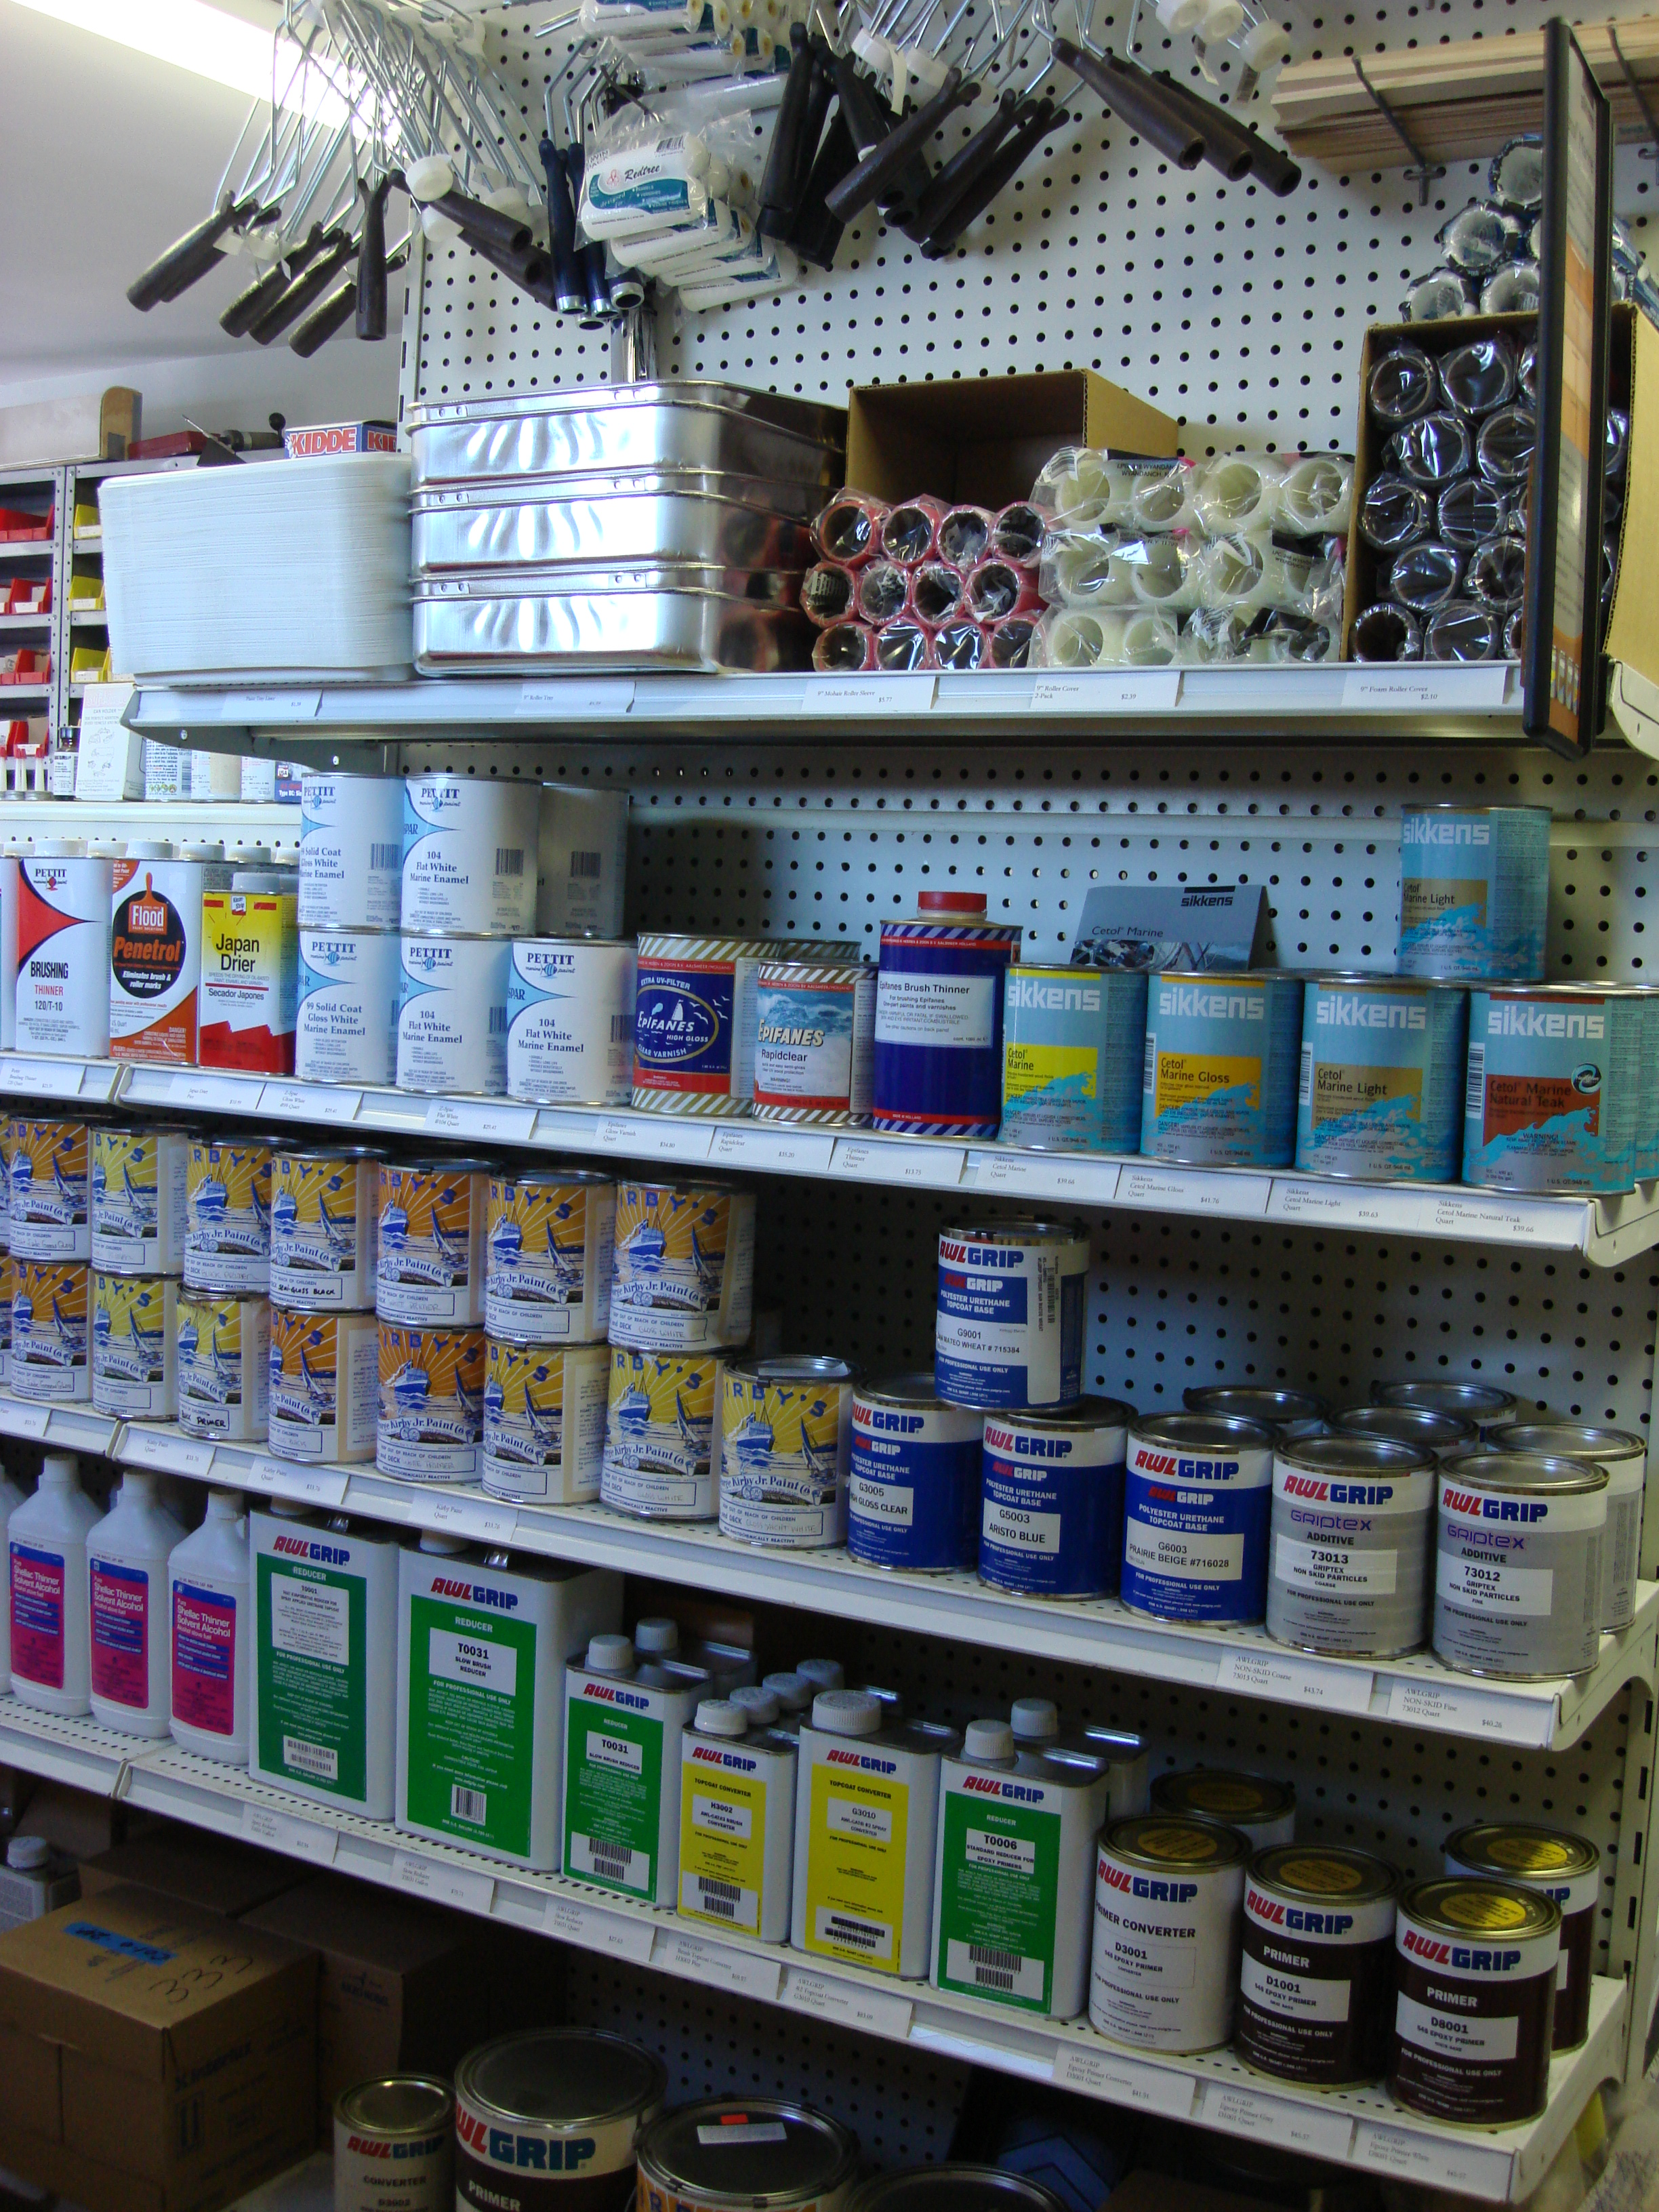 Sikkens & Kirby Paints and paint supplies.